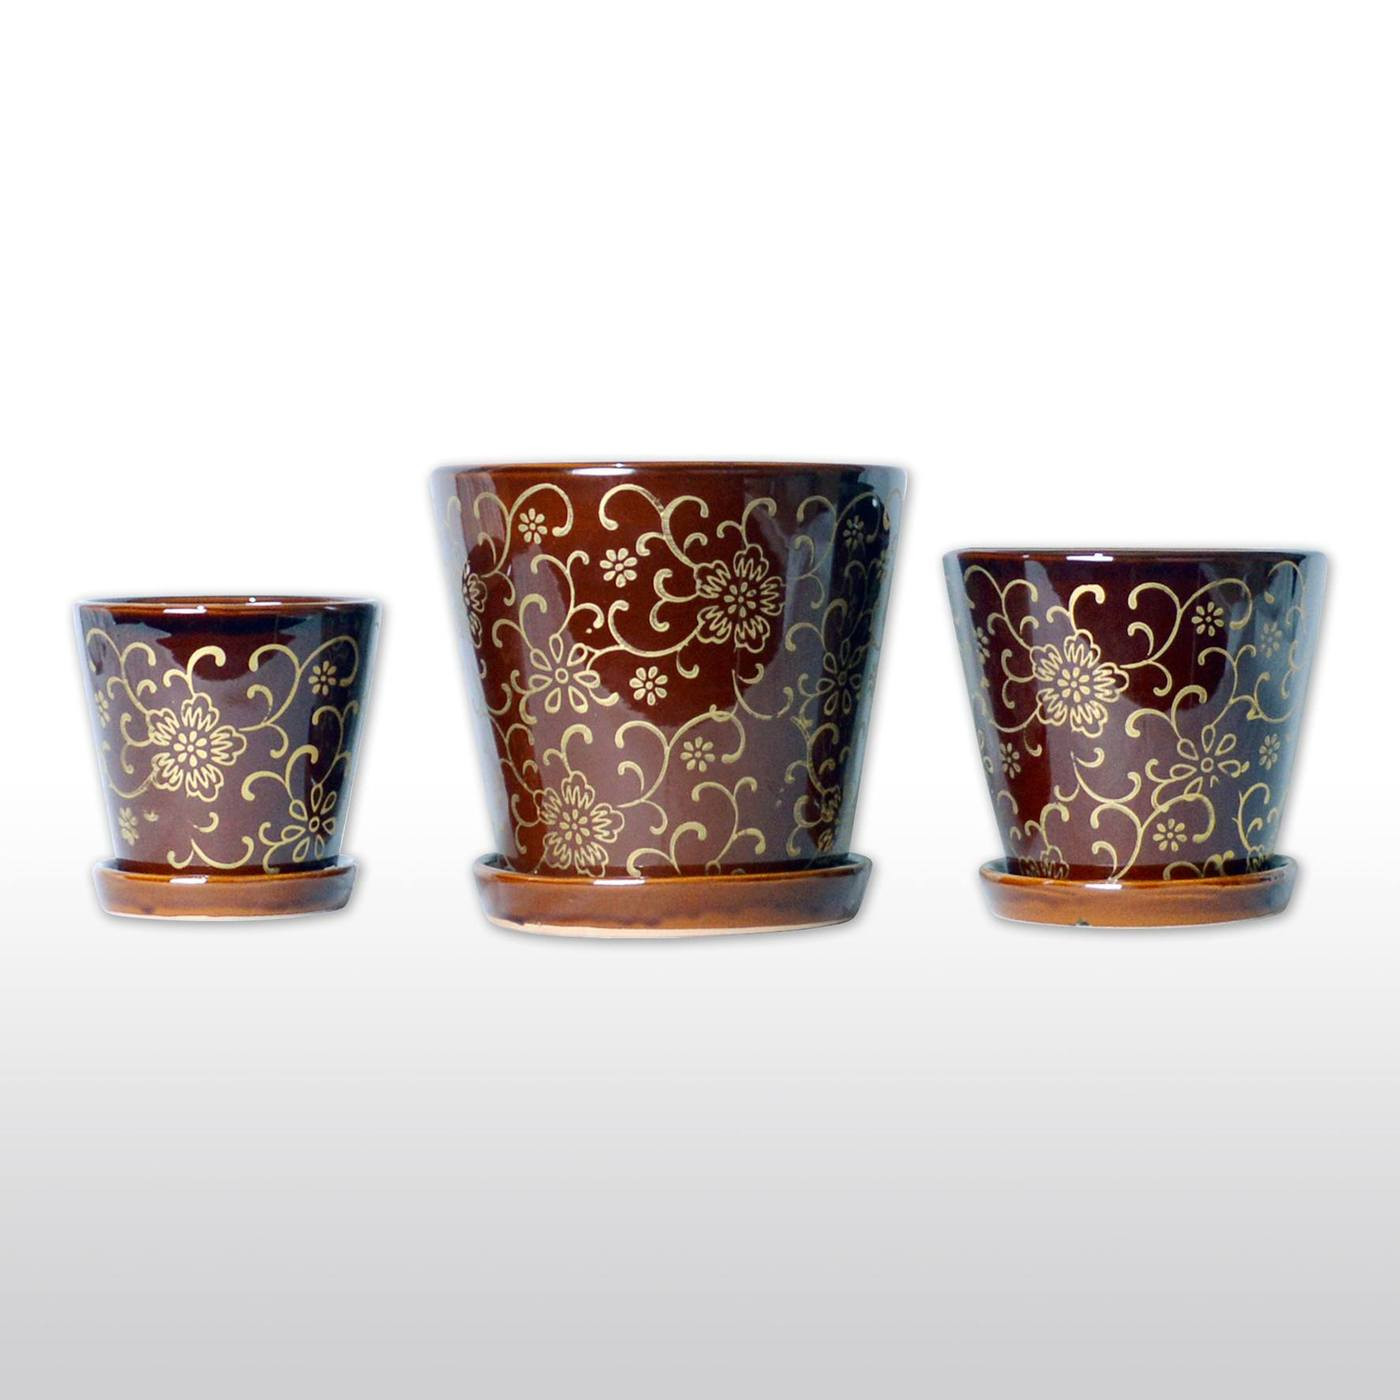 feng shui wealth vase kit of a trio of ceramic planters with trays floral motif three pots within ceramic planters ceramic flower pots with bottom trays with golden designs in burgundy set of